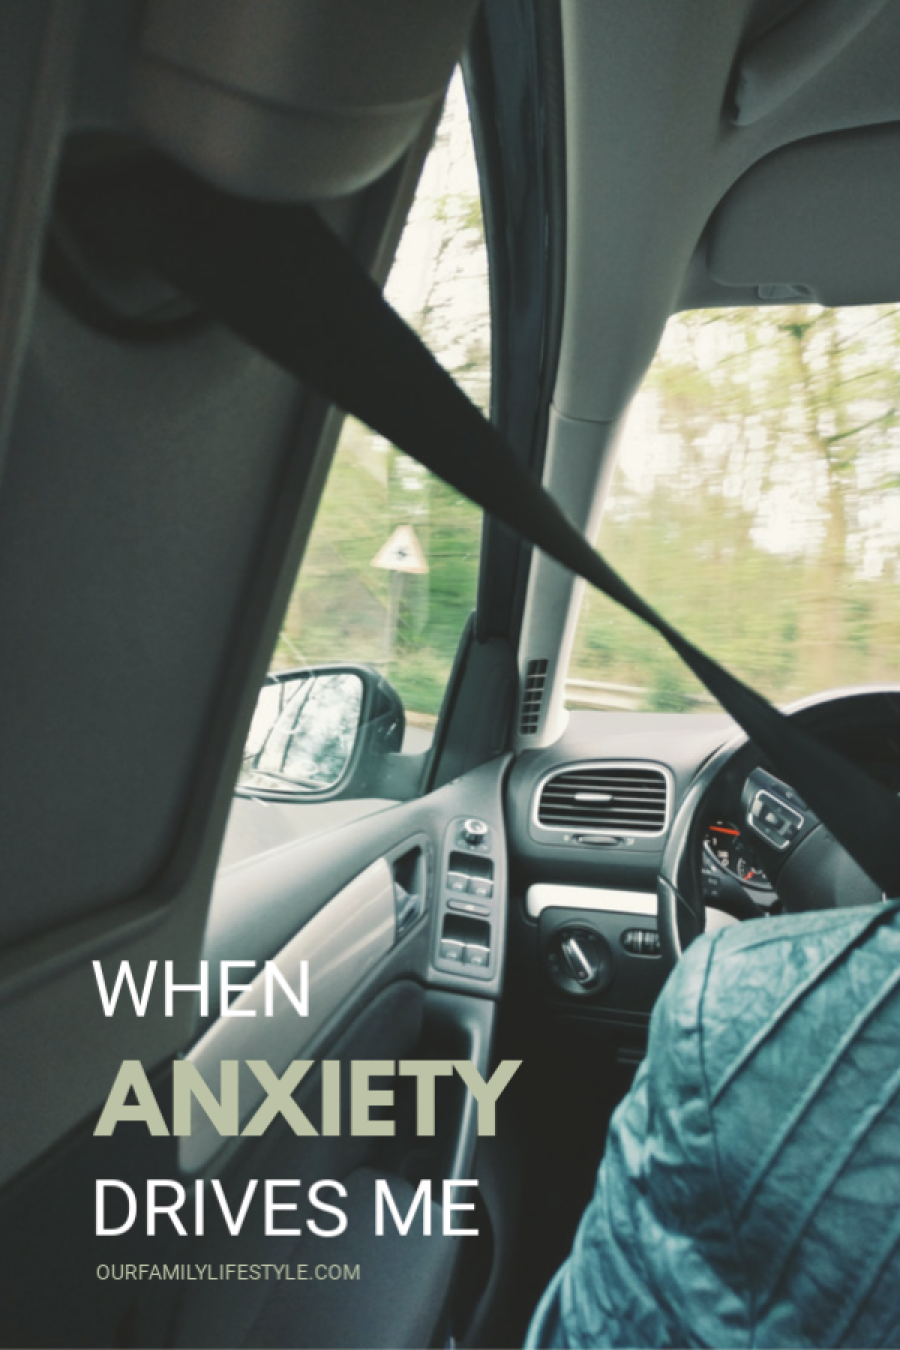 When Anxiety Drives Me